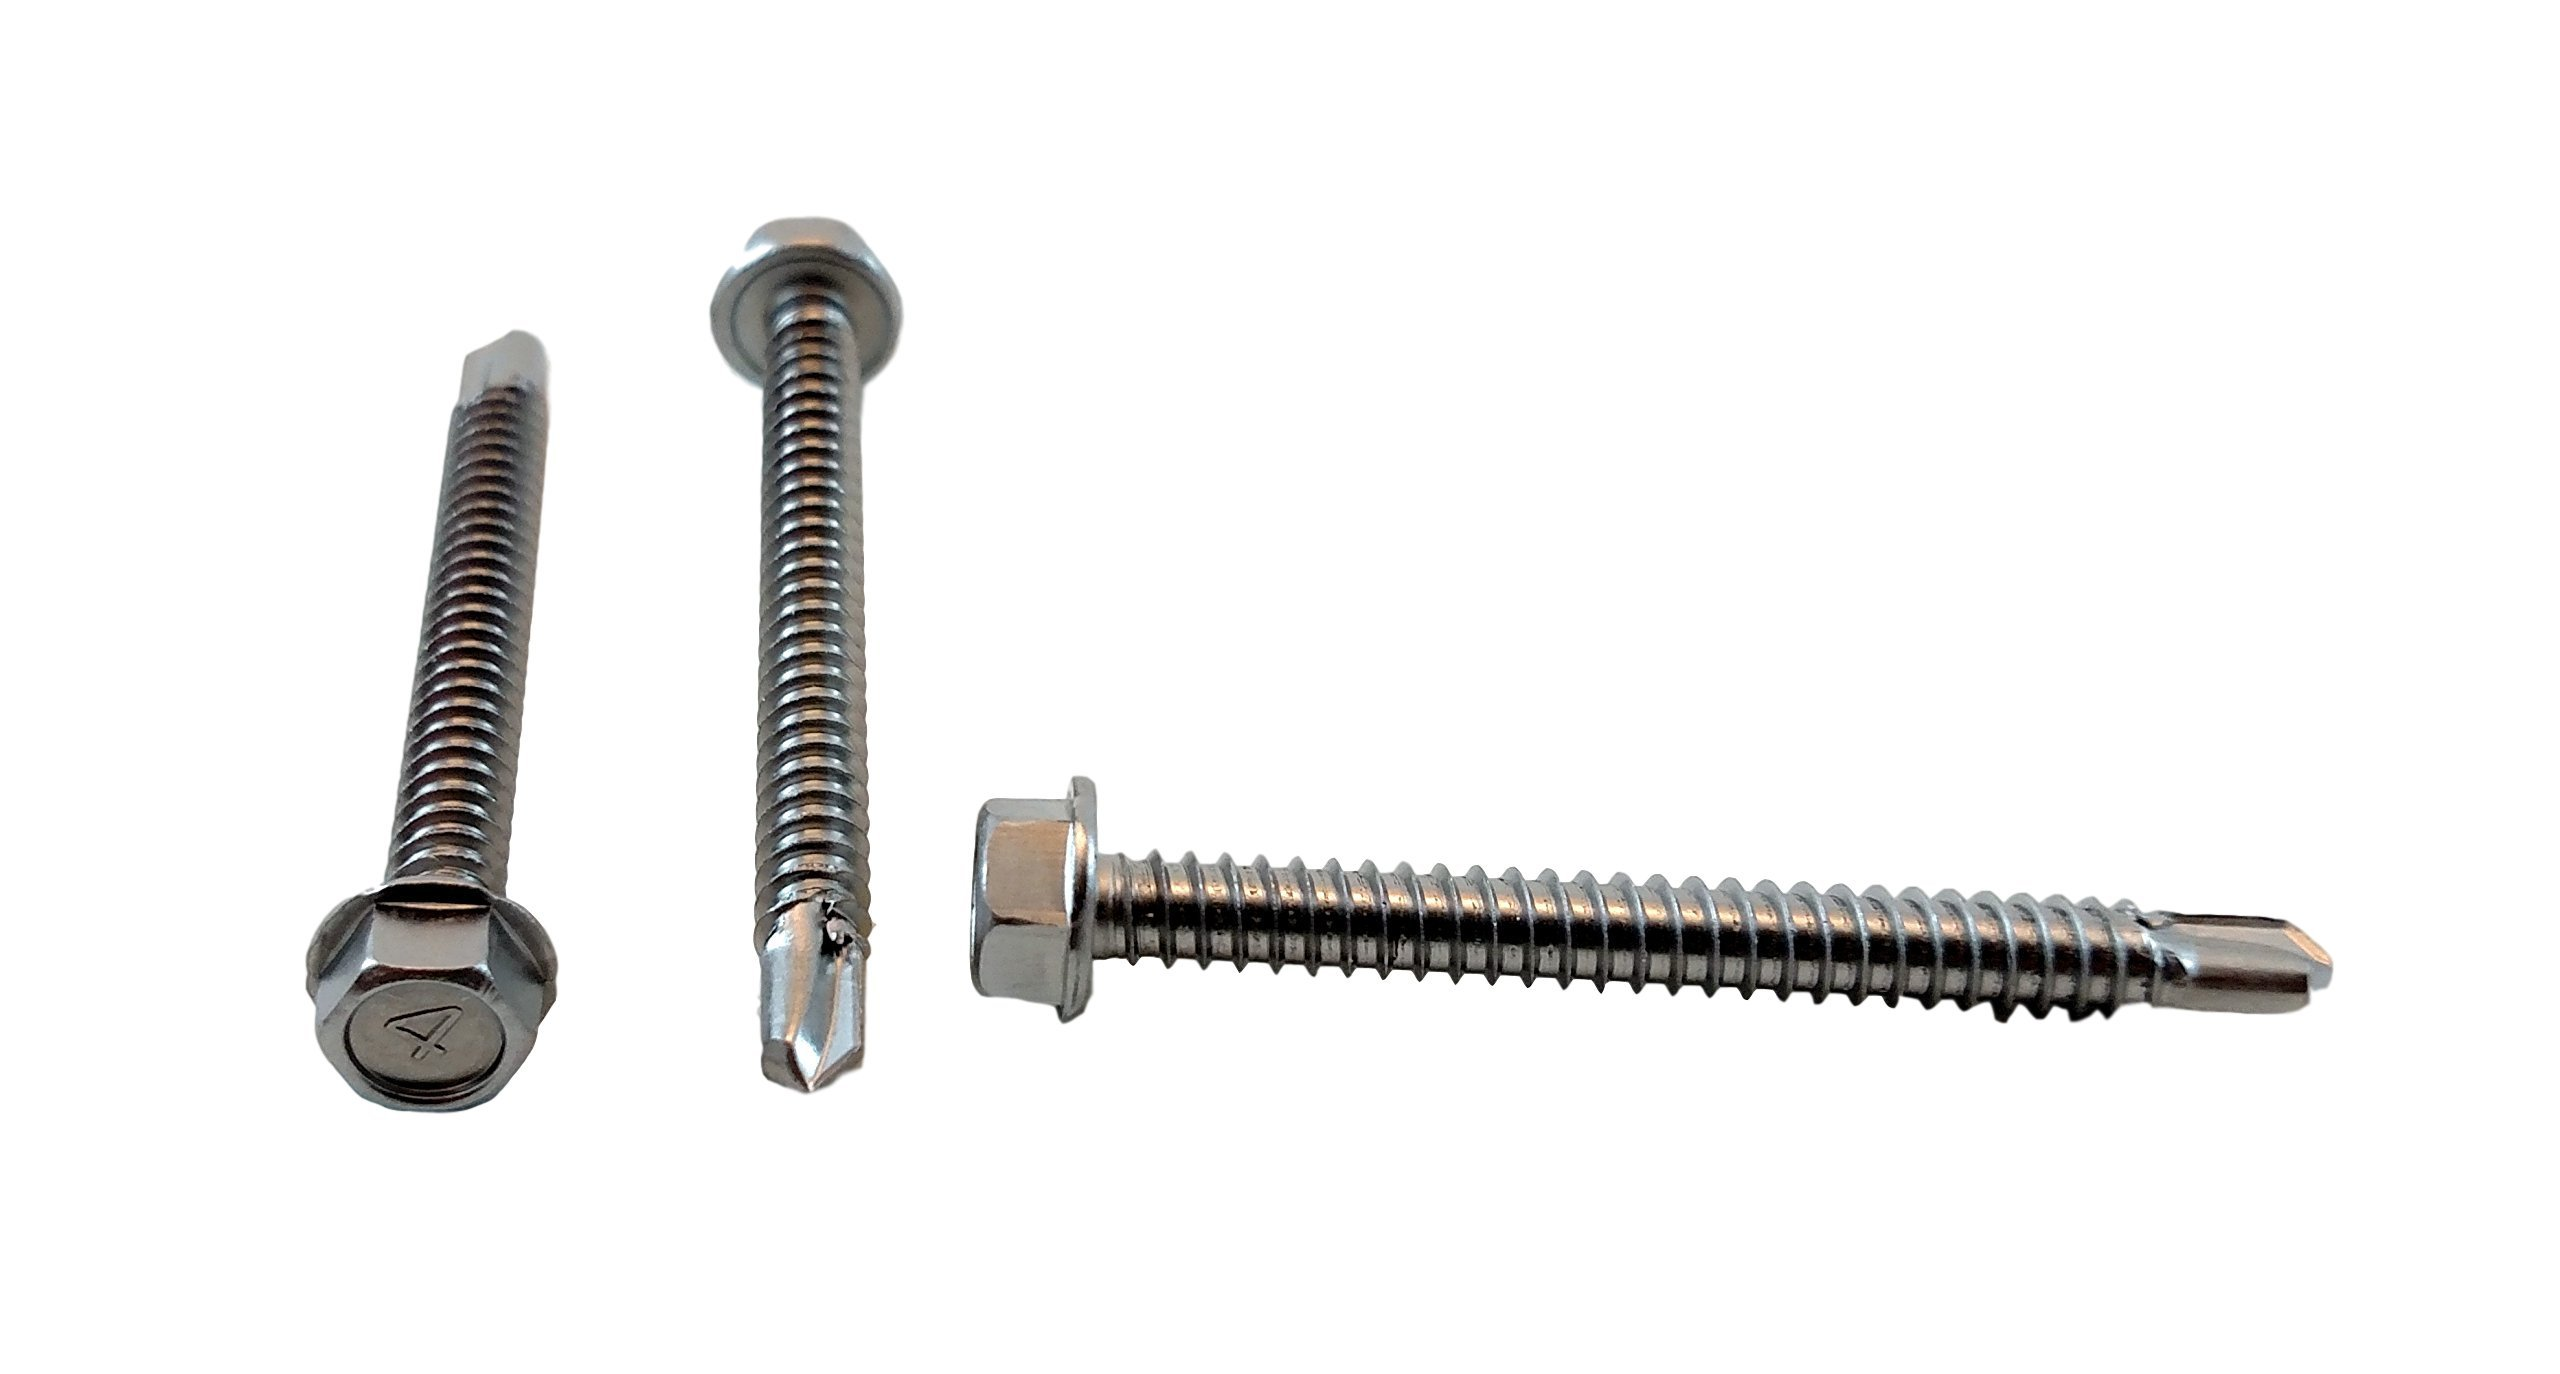 Stainless #14 x 2-1/2'' Hex Washer Head Self Drilling Sheet Metal Tek Screws With Drill Point, (3/4'' To 2-1/2'' Lengths in Listing) 50 pieces (#14 x 2-1/2 inch)